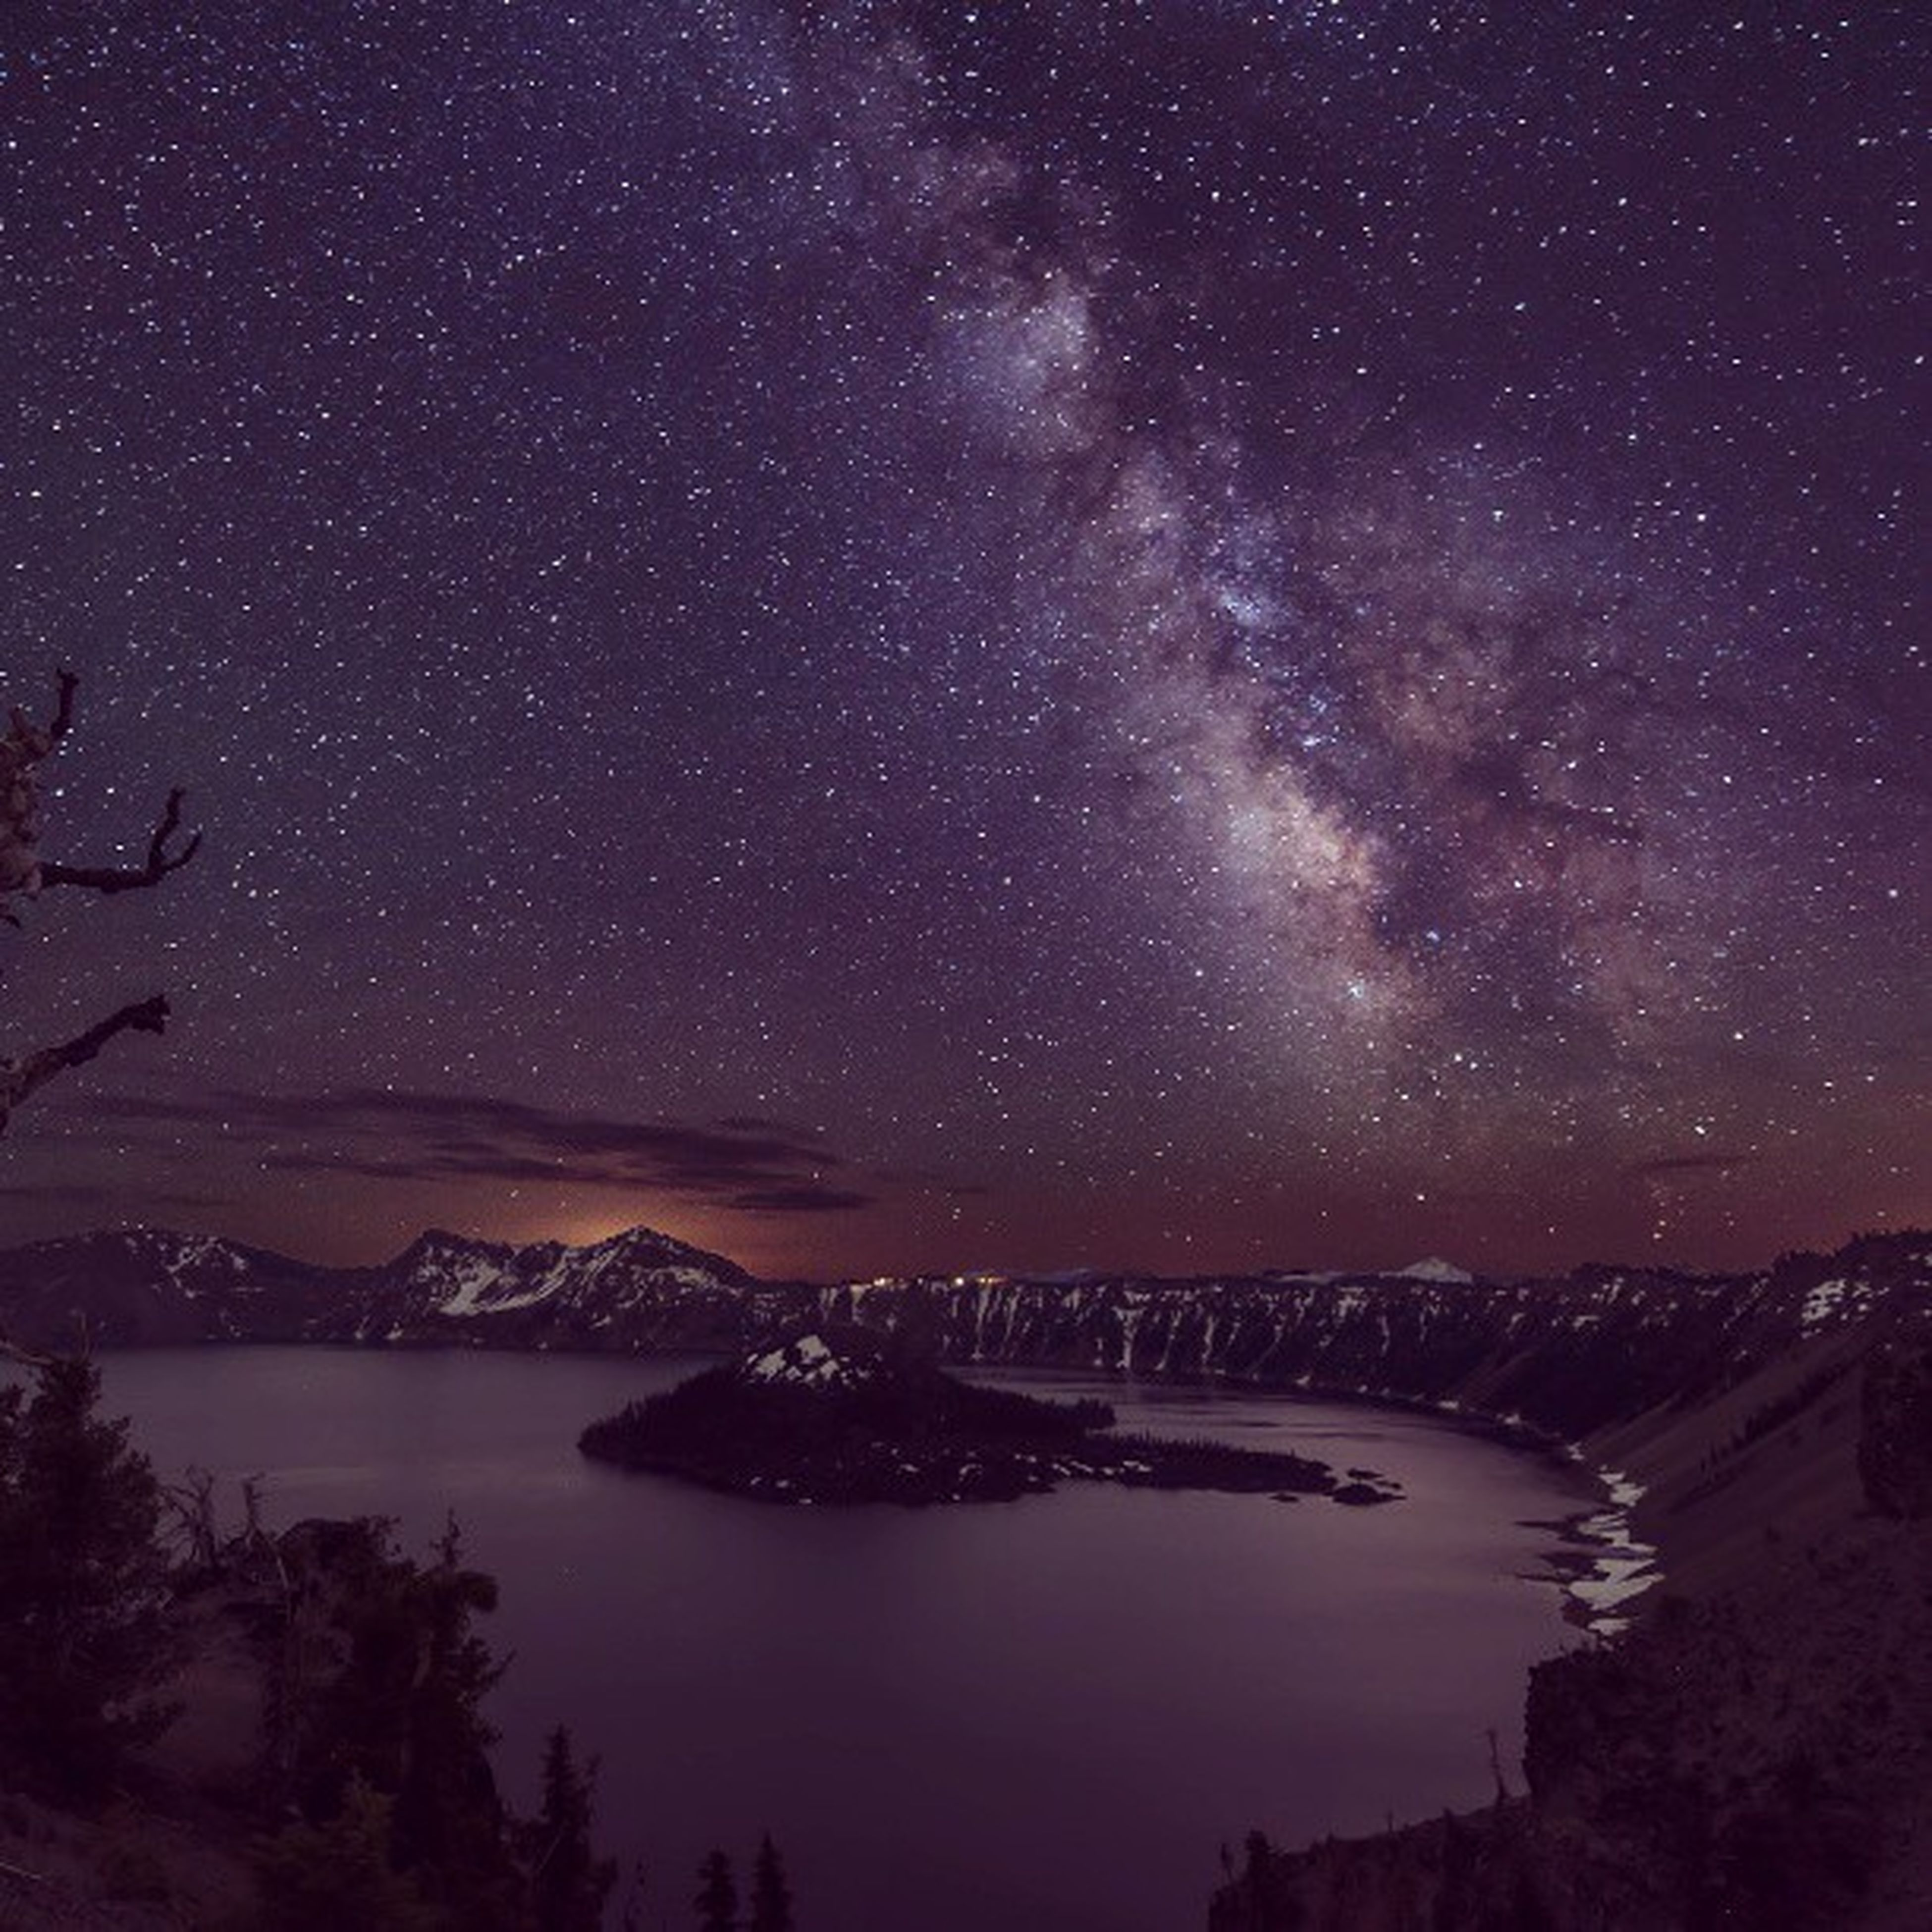 night, star - space, star field, illuminated, astronomy, scenics, tranquil scene, beauty in nature, star, galaxy, tranquility, sky, nature, water, idyllic, space, mountain, constellation, majestic, milky way